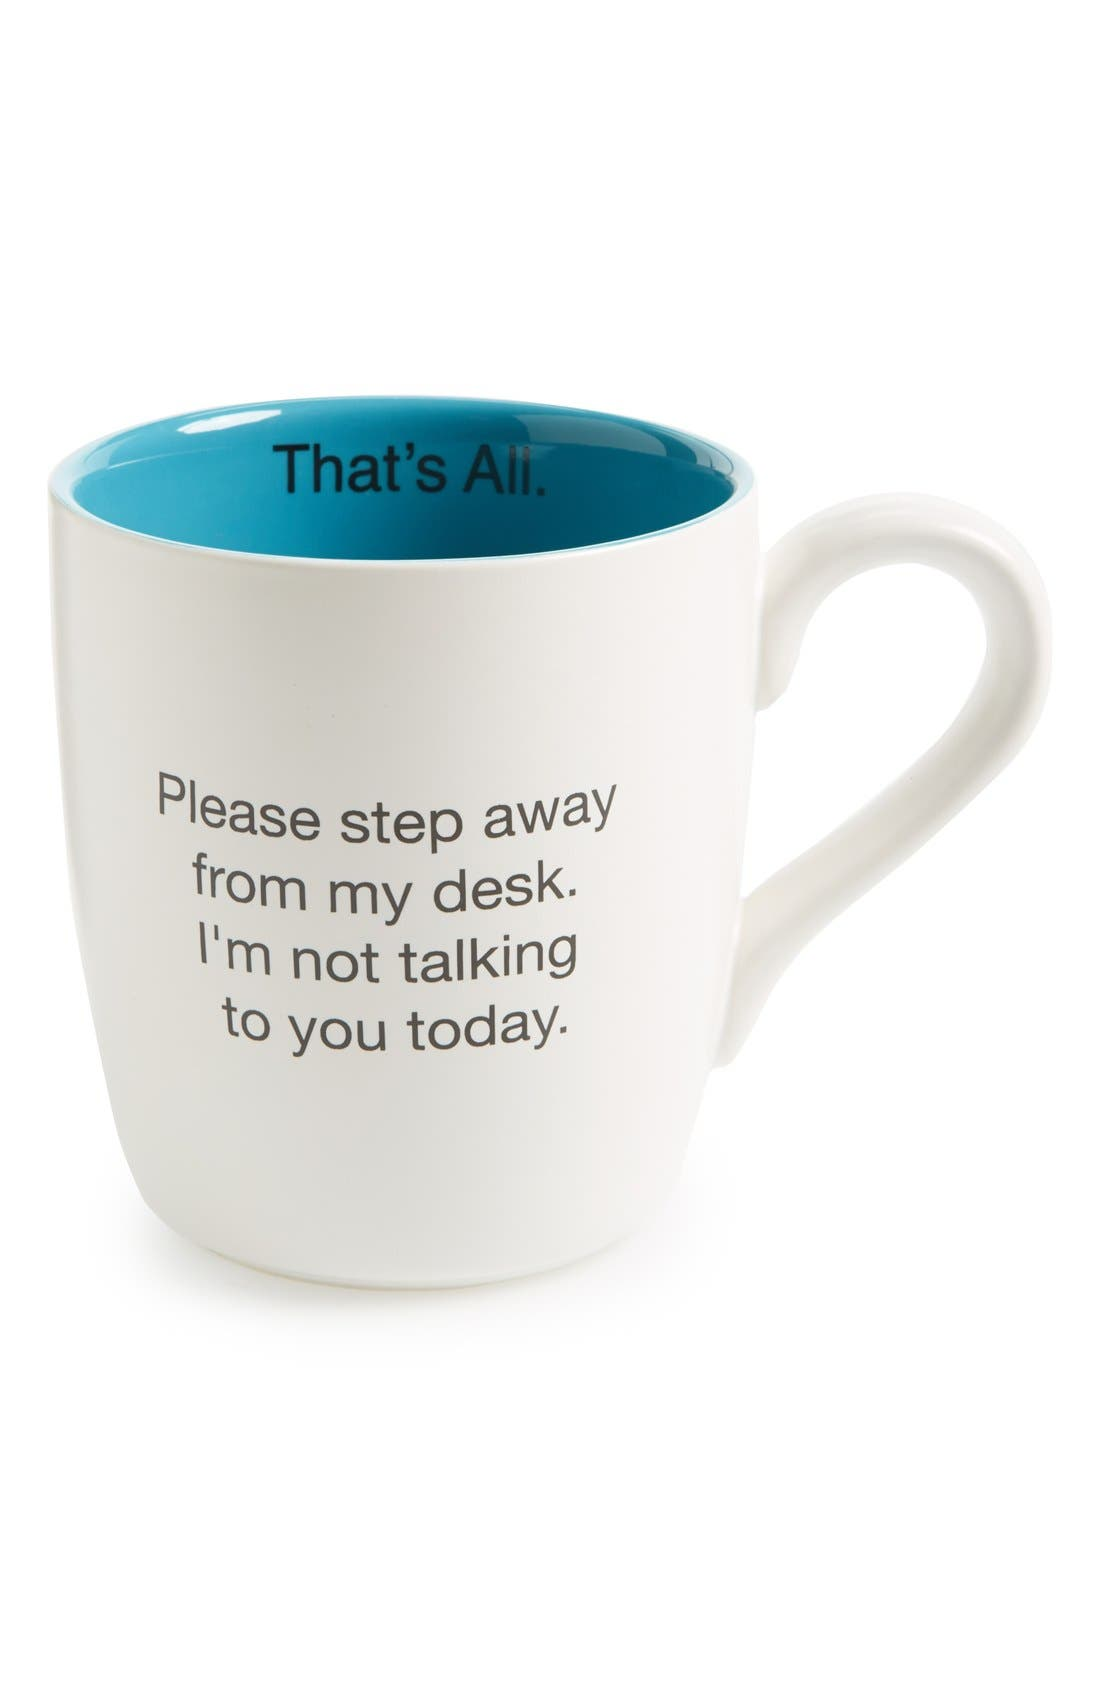 Alternate Image 1 Selected - Santa Barbara Design 'That's All - Please Step Away From My Desk' Mug